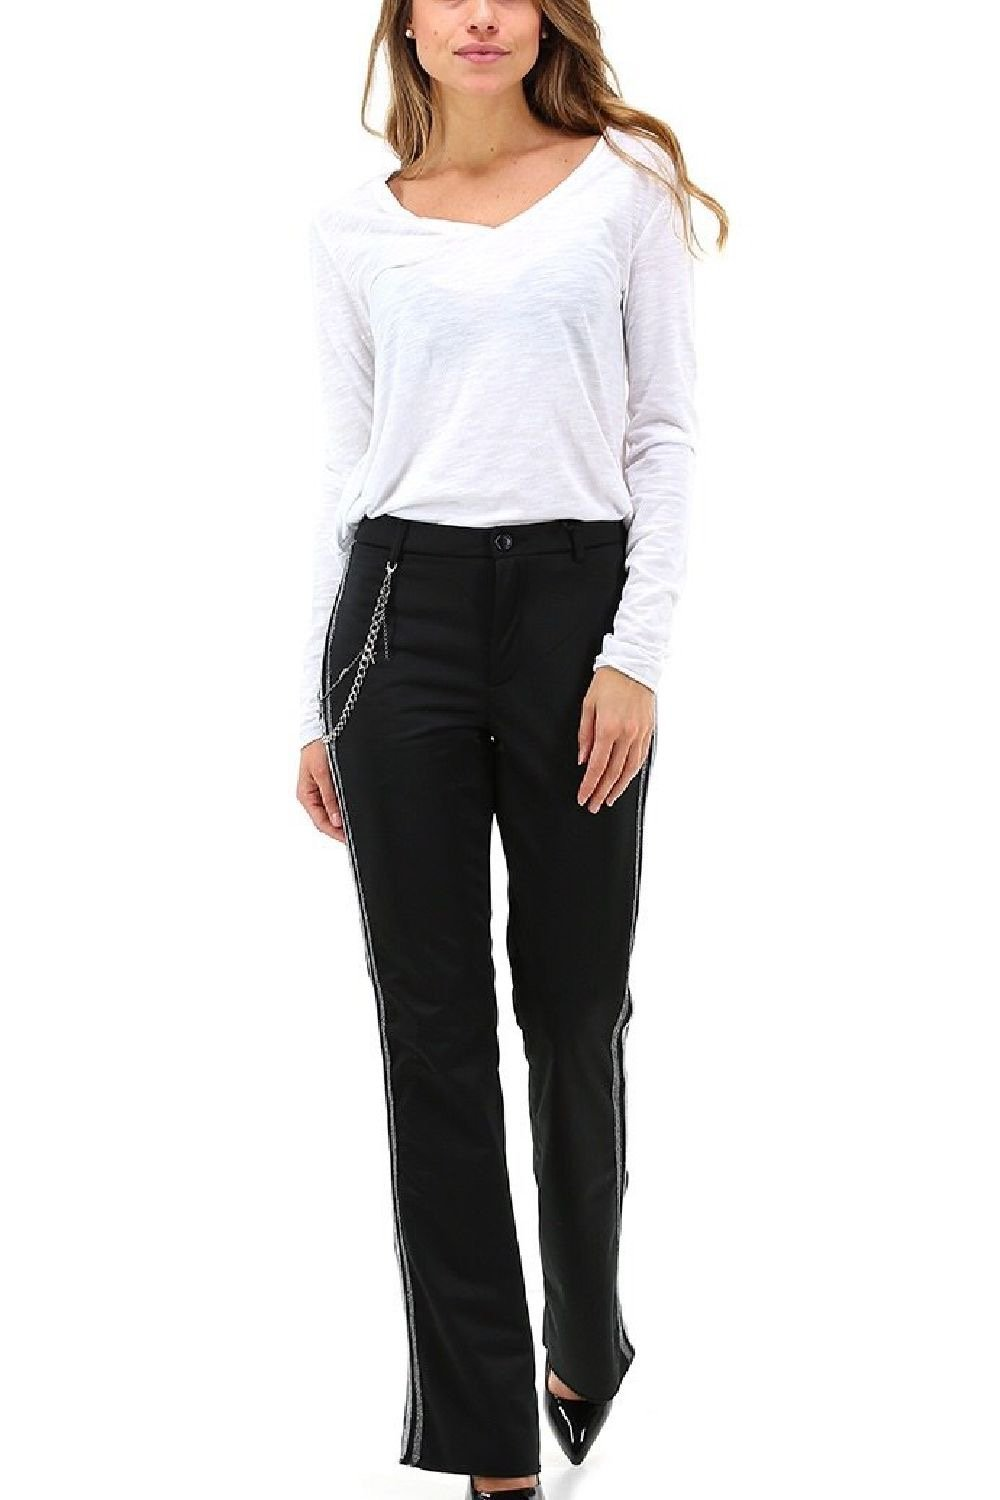 Side Seam Stripes Pants - The Bobby Boga